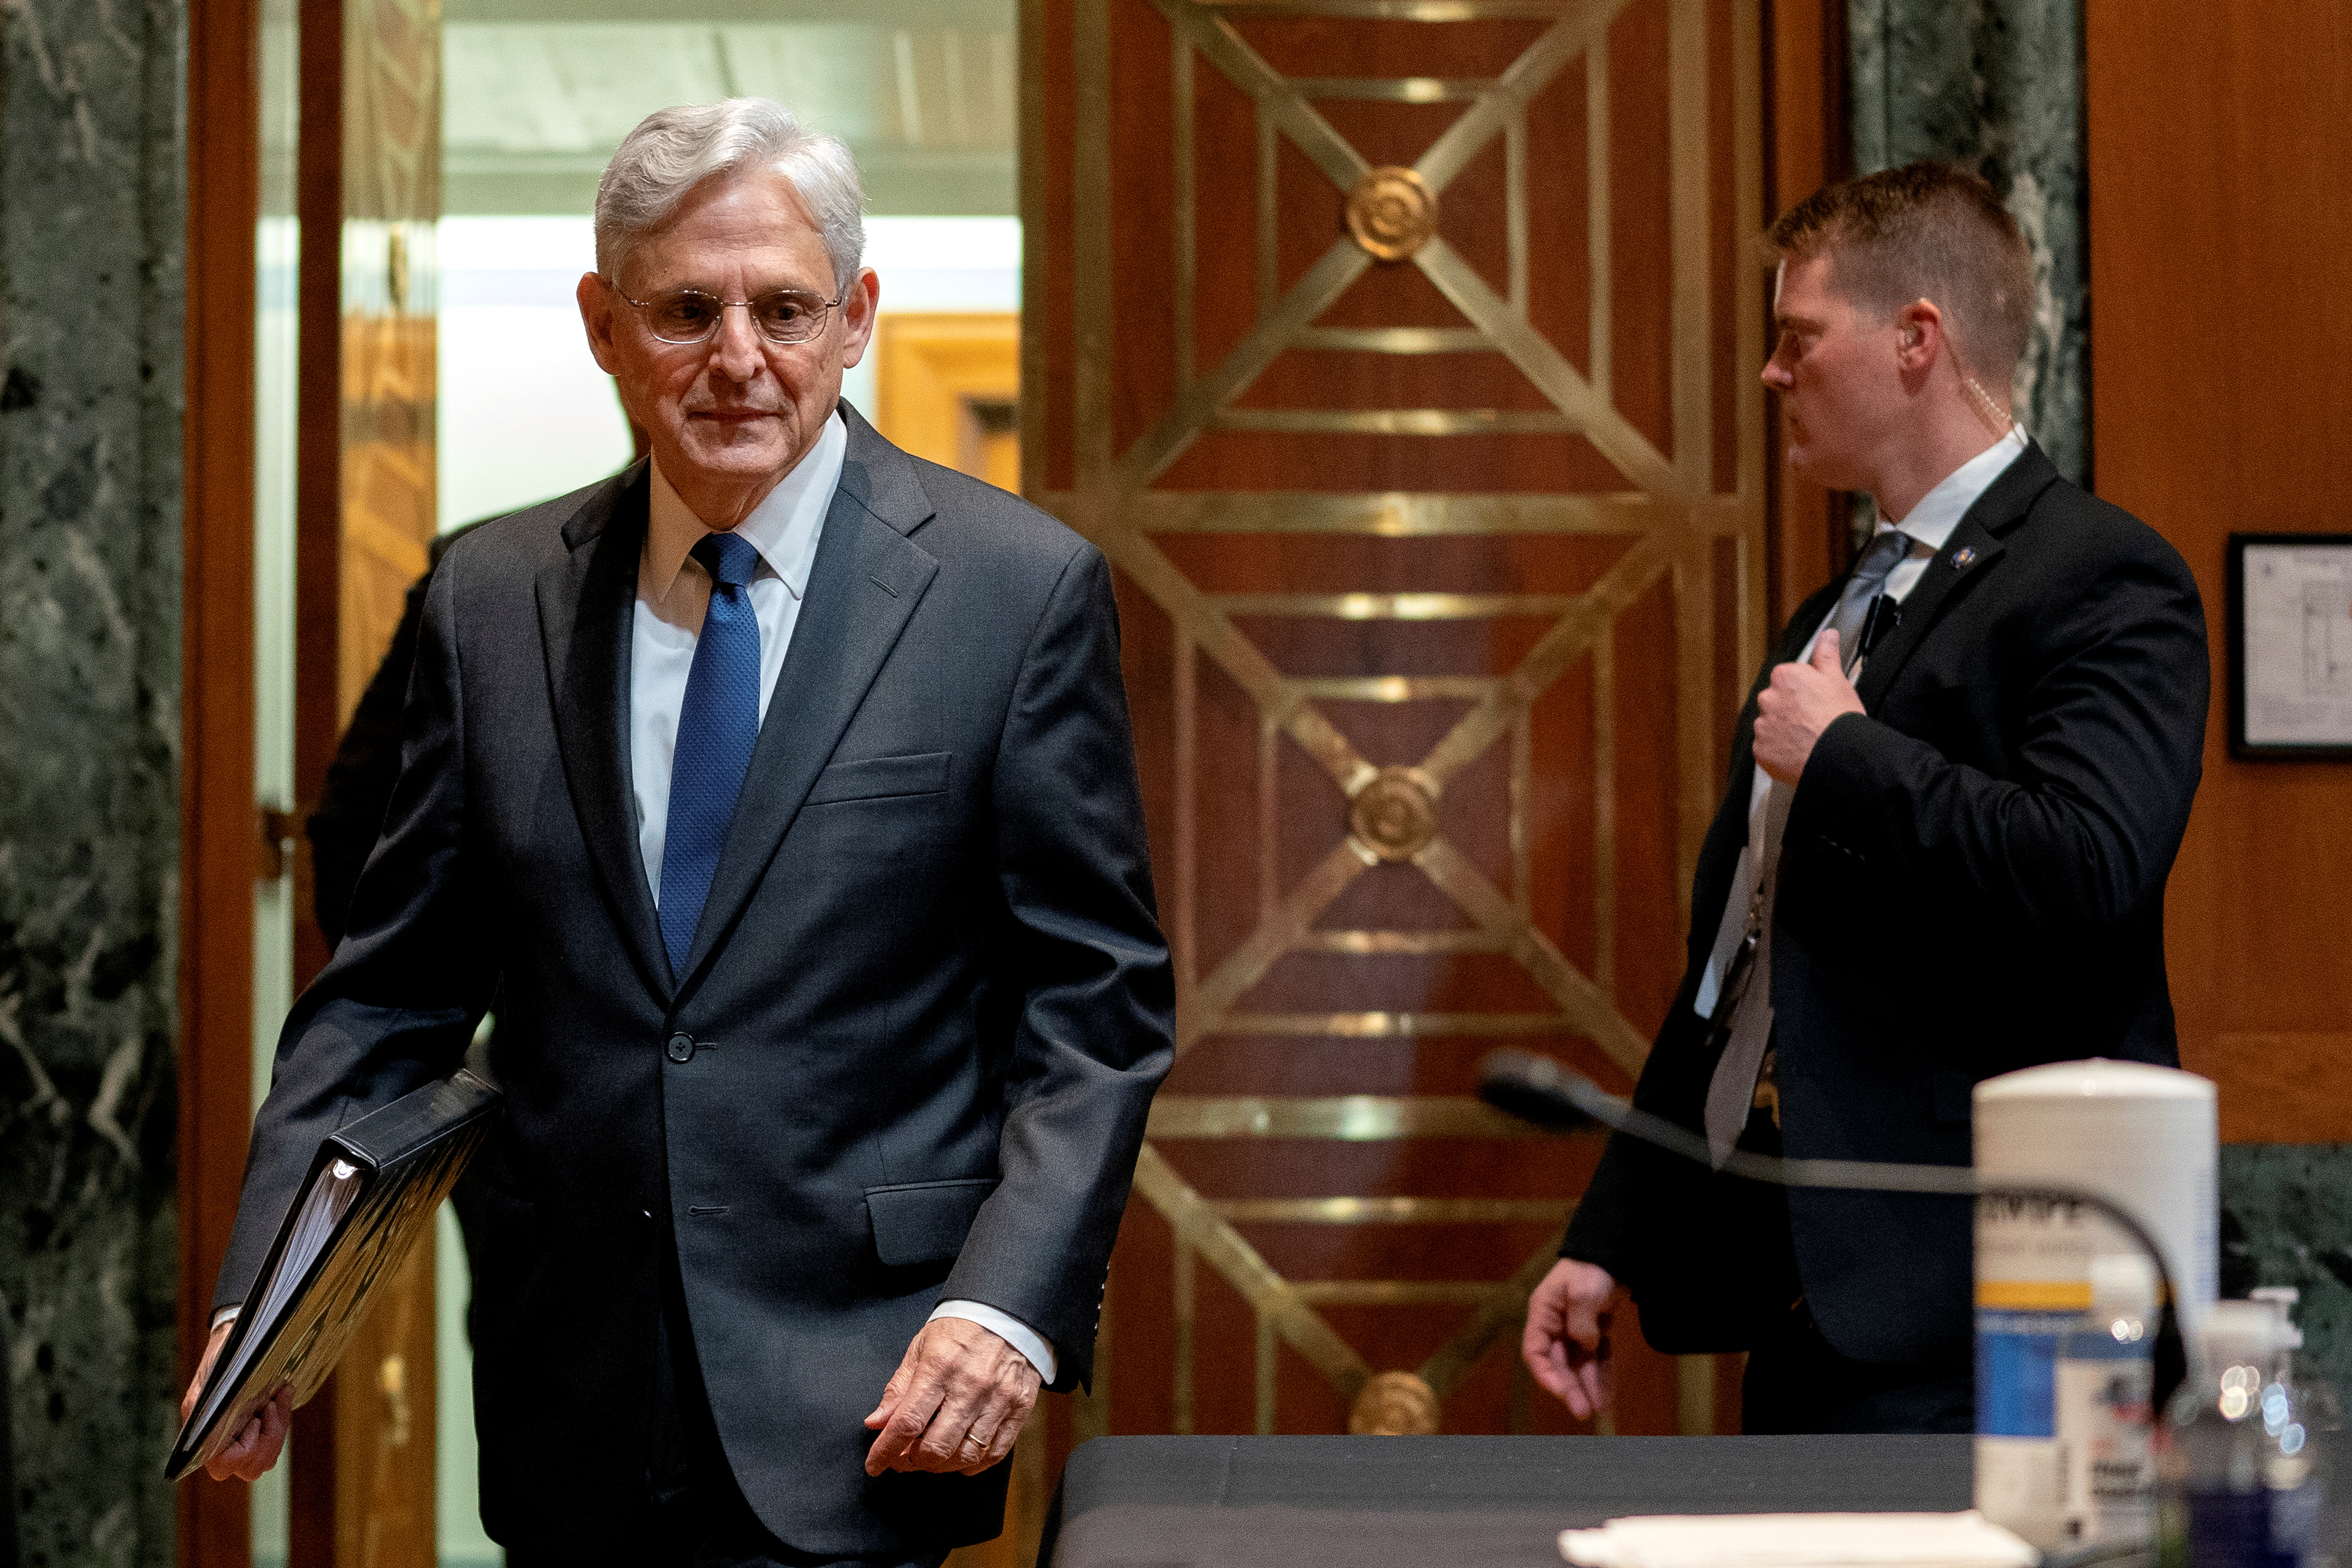 Merrick Garland, U.S. attorney general arrives to a Senate Appropriations Subcommittee on Commerce, Justice, Science, and Related Agencies hearing at the Dirksen Senate Office building in Washington, D.C., U.S., June 9, 2021. Stefani Reynolds/Pool via REUTERS